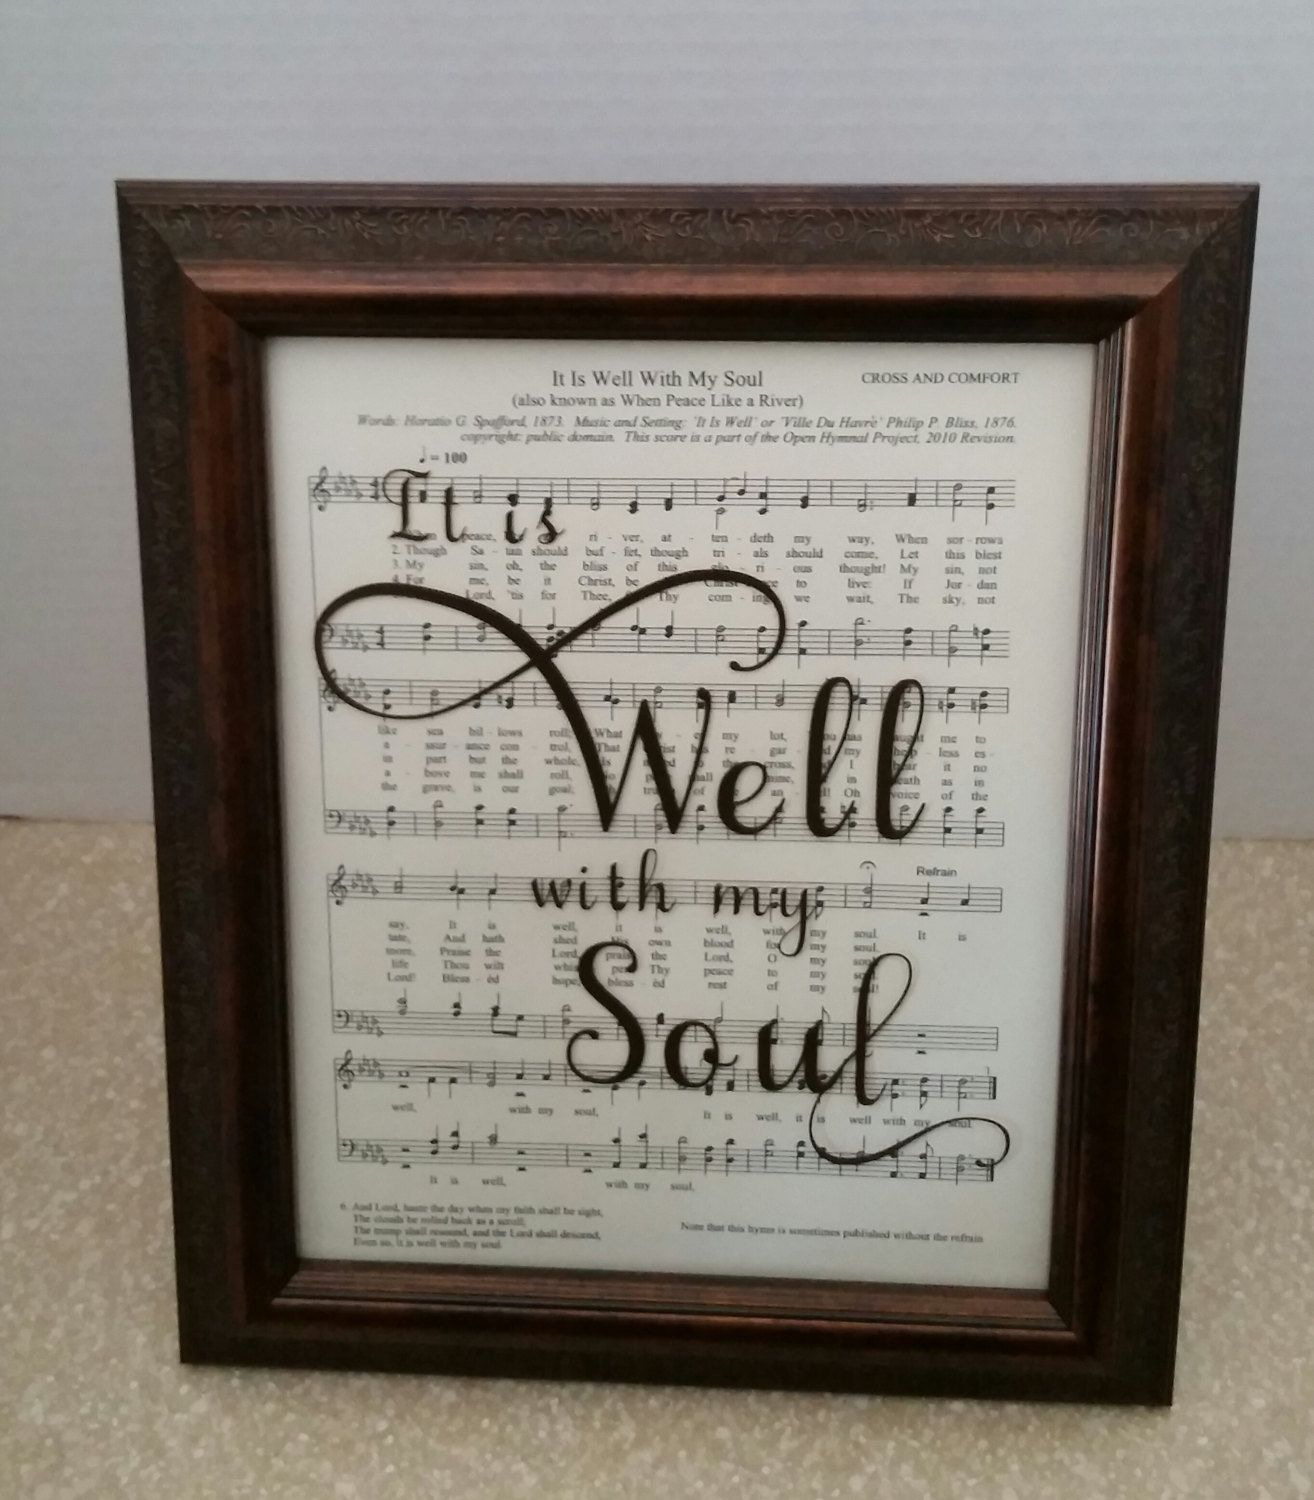 It Is Well With My Soul Vinyl Picture With Sheet Music